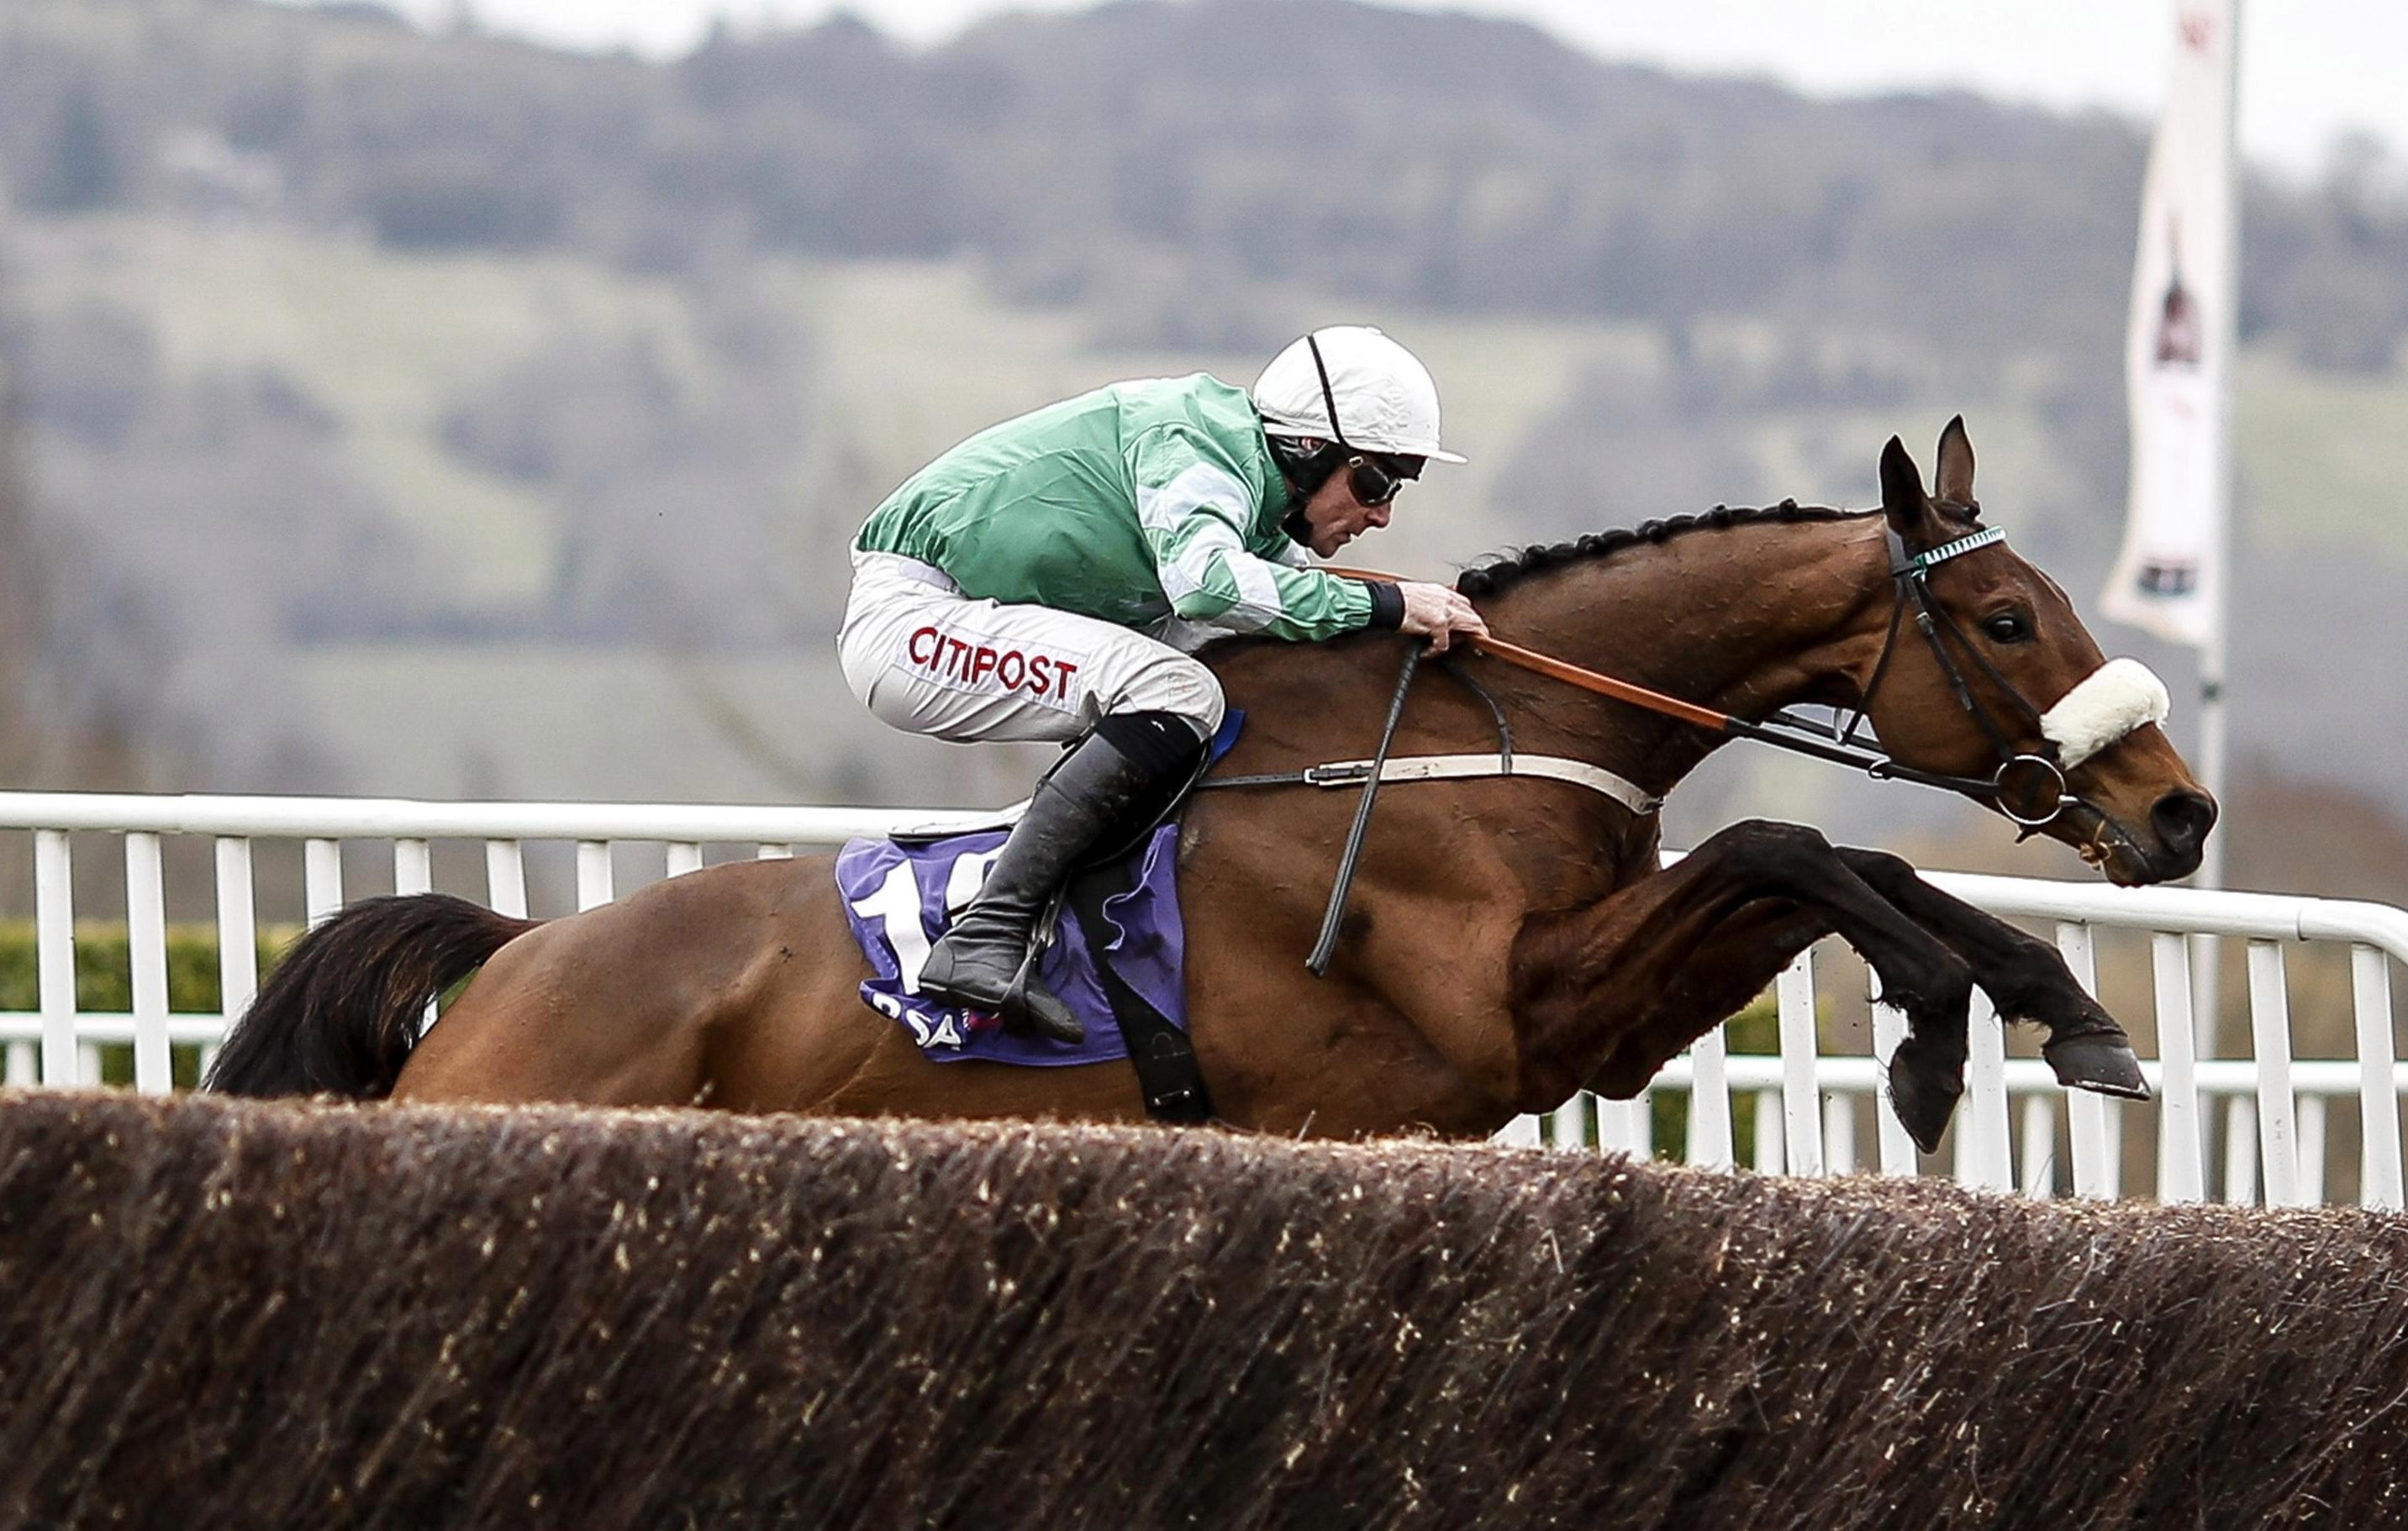 Cheltenham Gold Cup favourite Presenting Percy to make his return in Sunday's John Durkan Chase at Punchestown